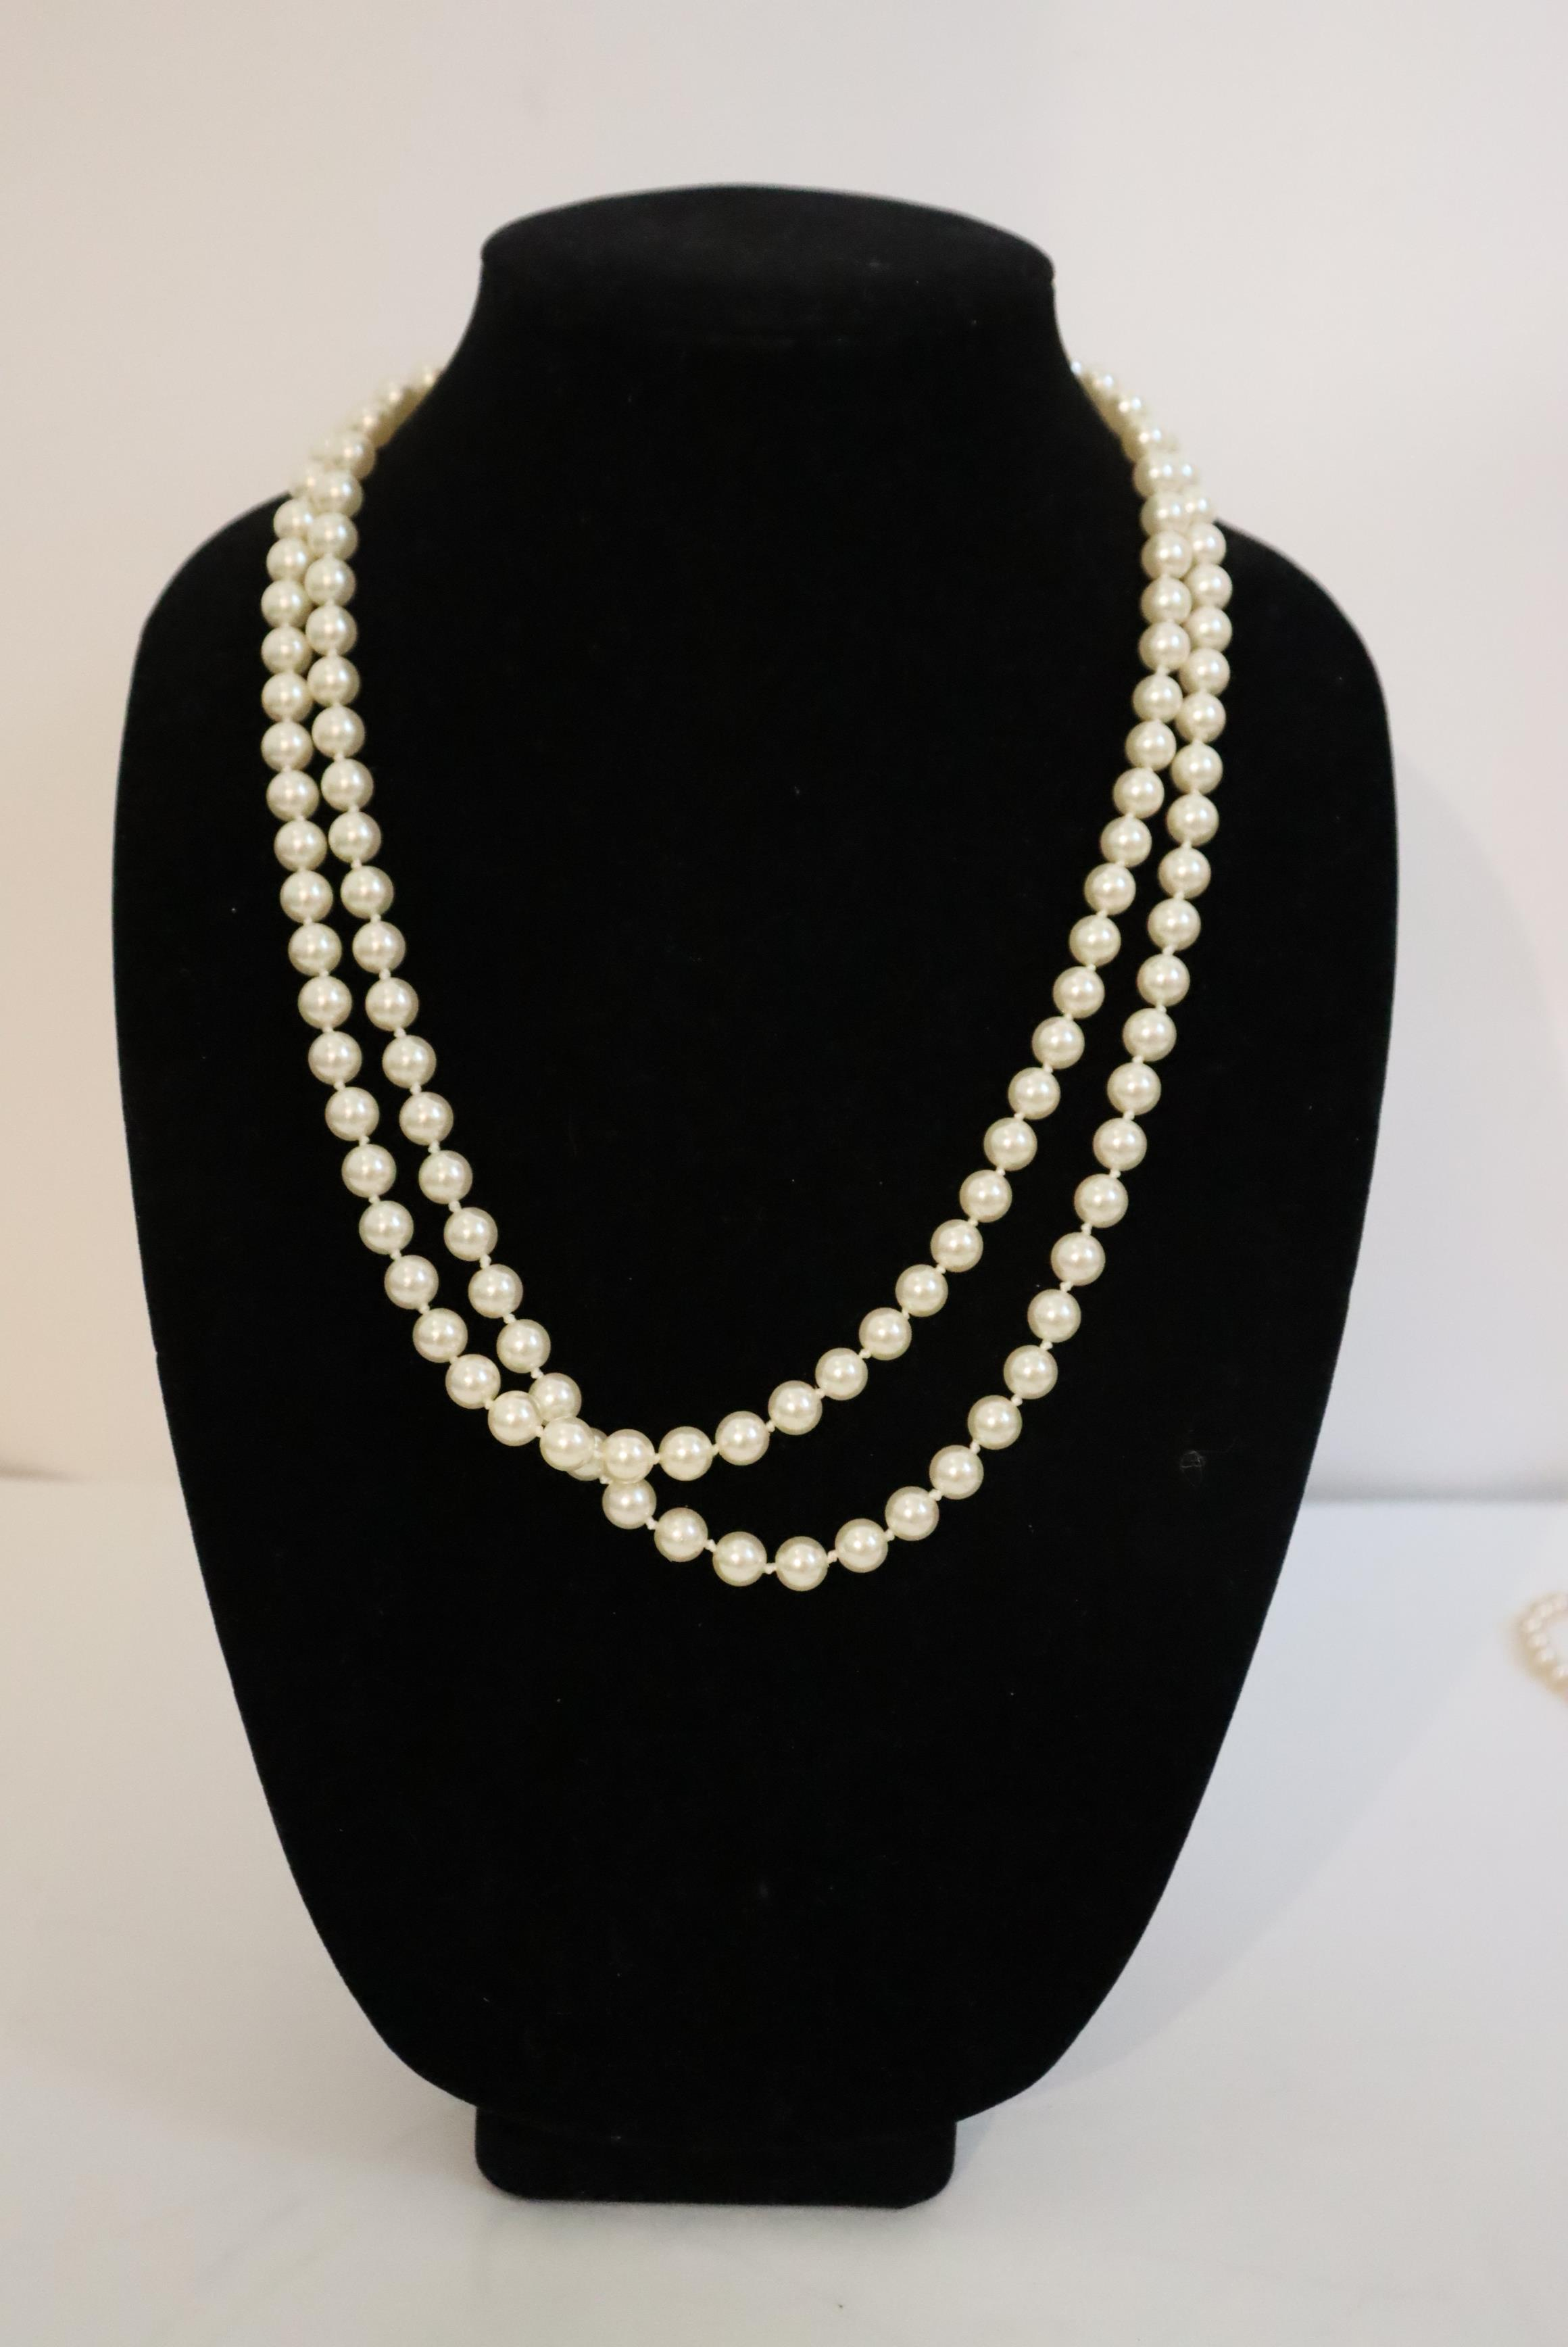 Large Collection of (10) Pearl / Beaded Necklaces - Image 5 of 20